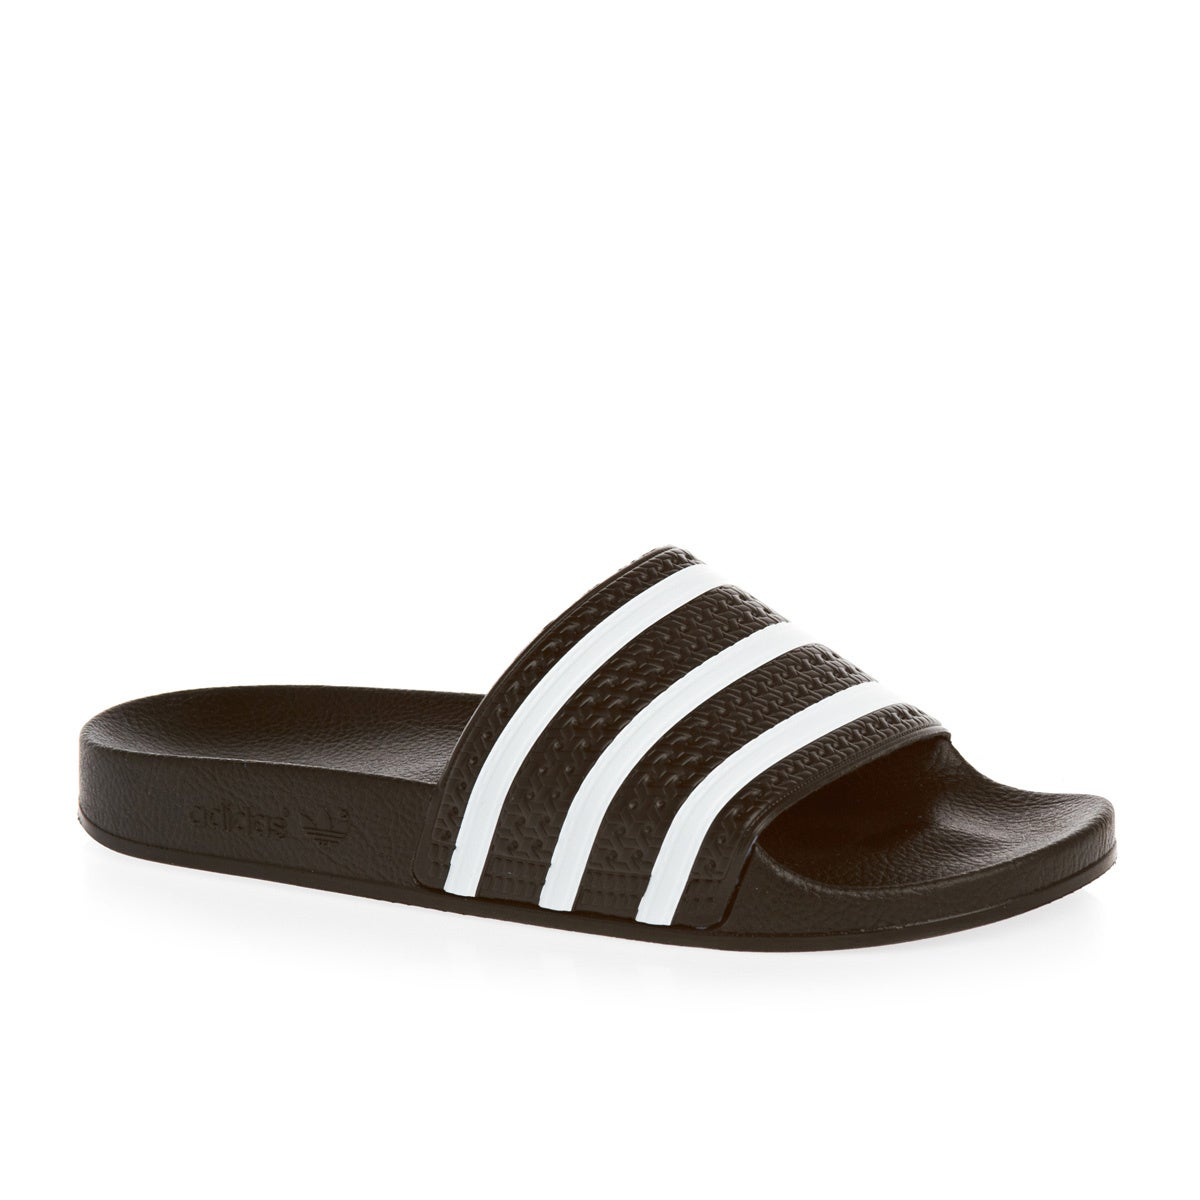 Adidas Originals Adilette Slider Sandals - Black White